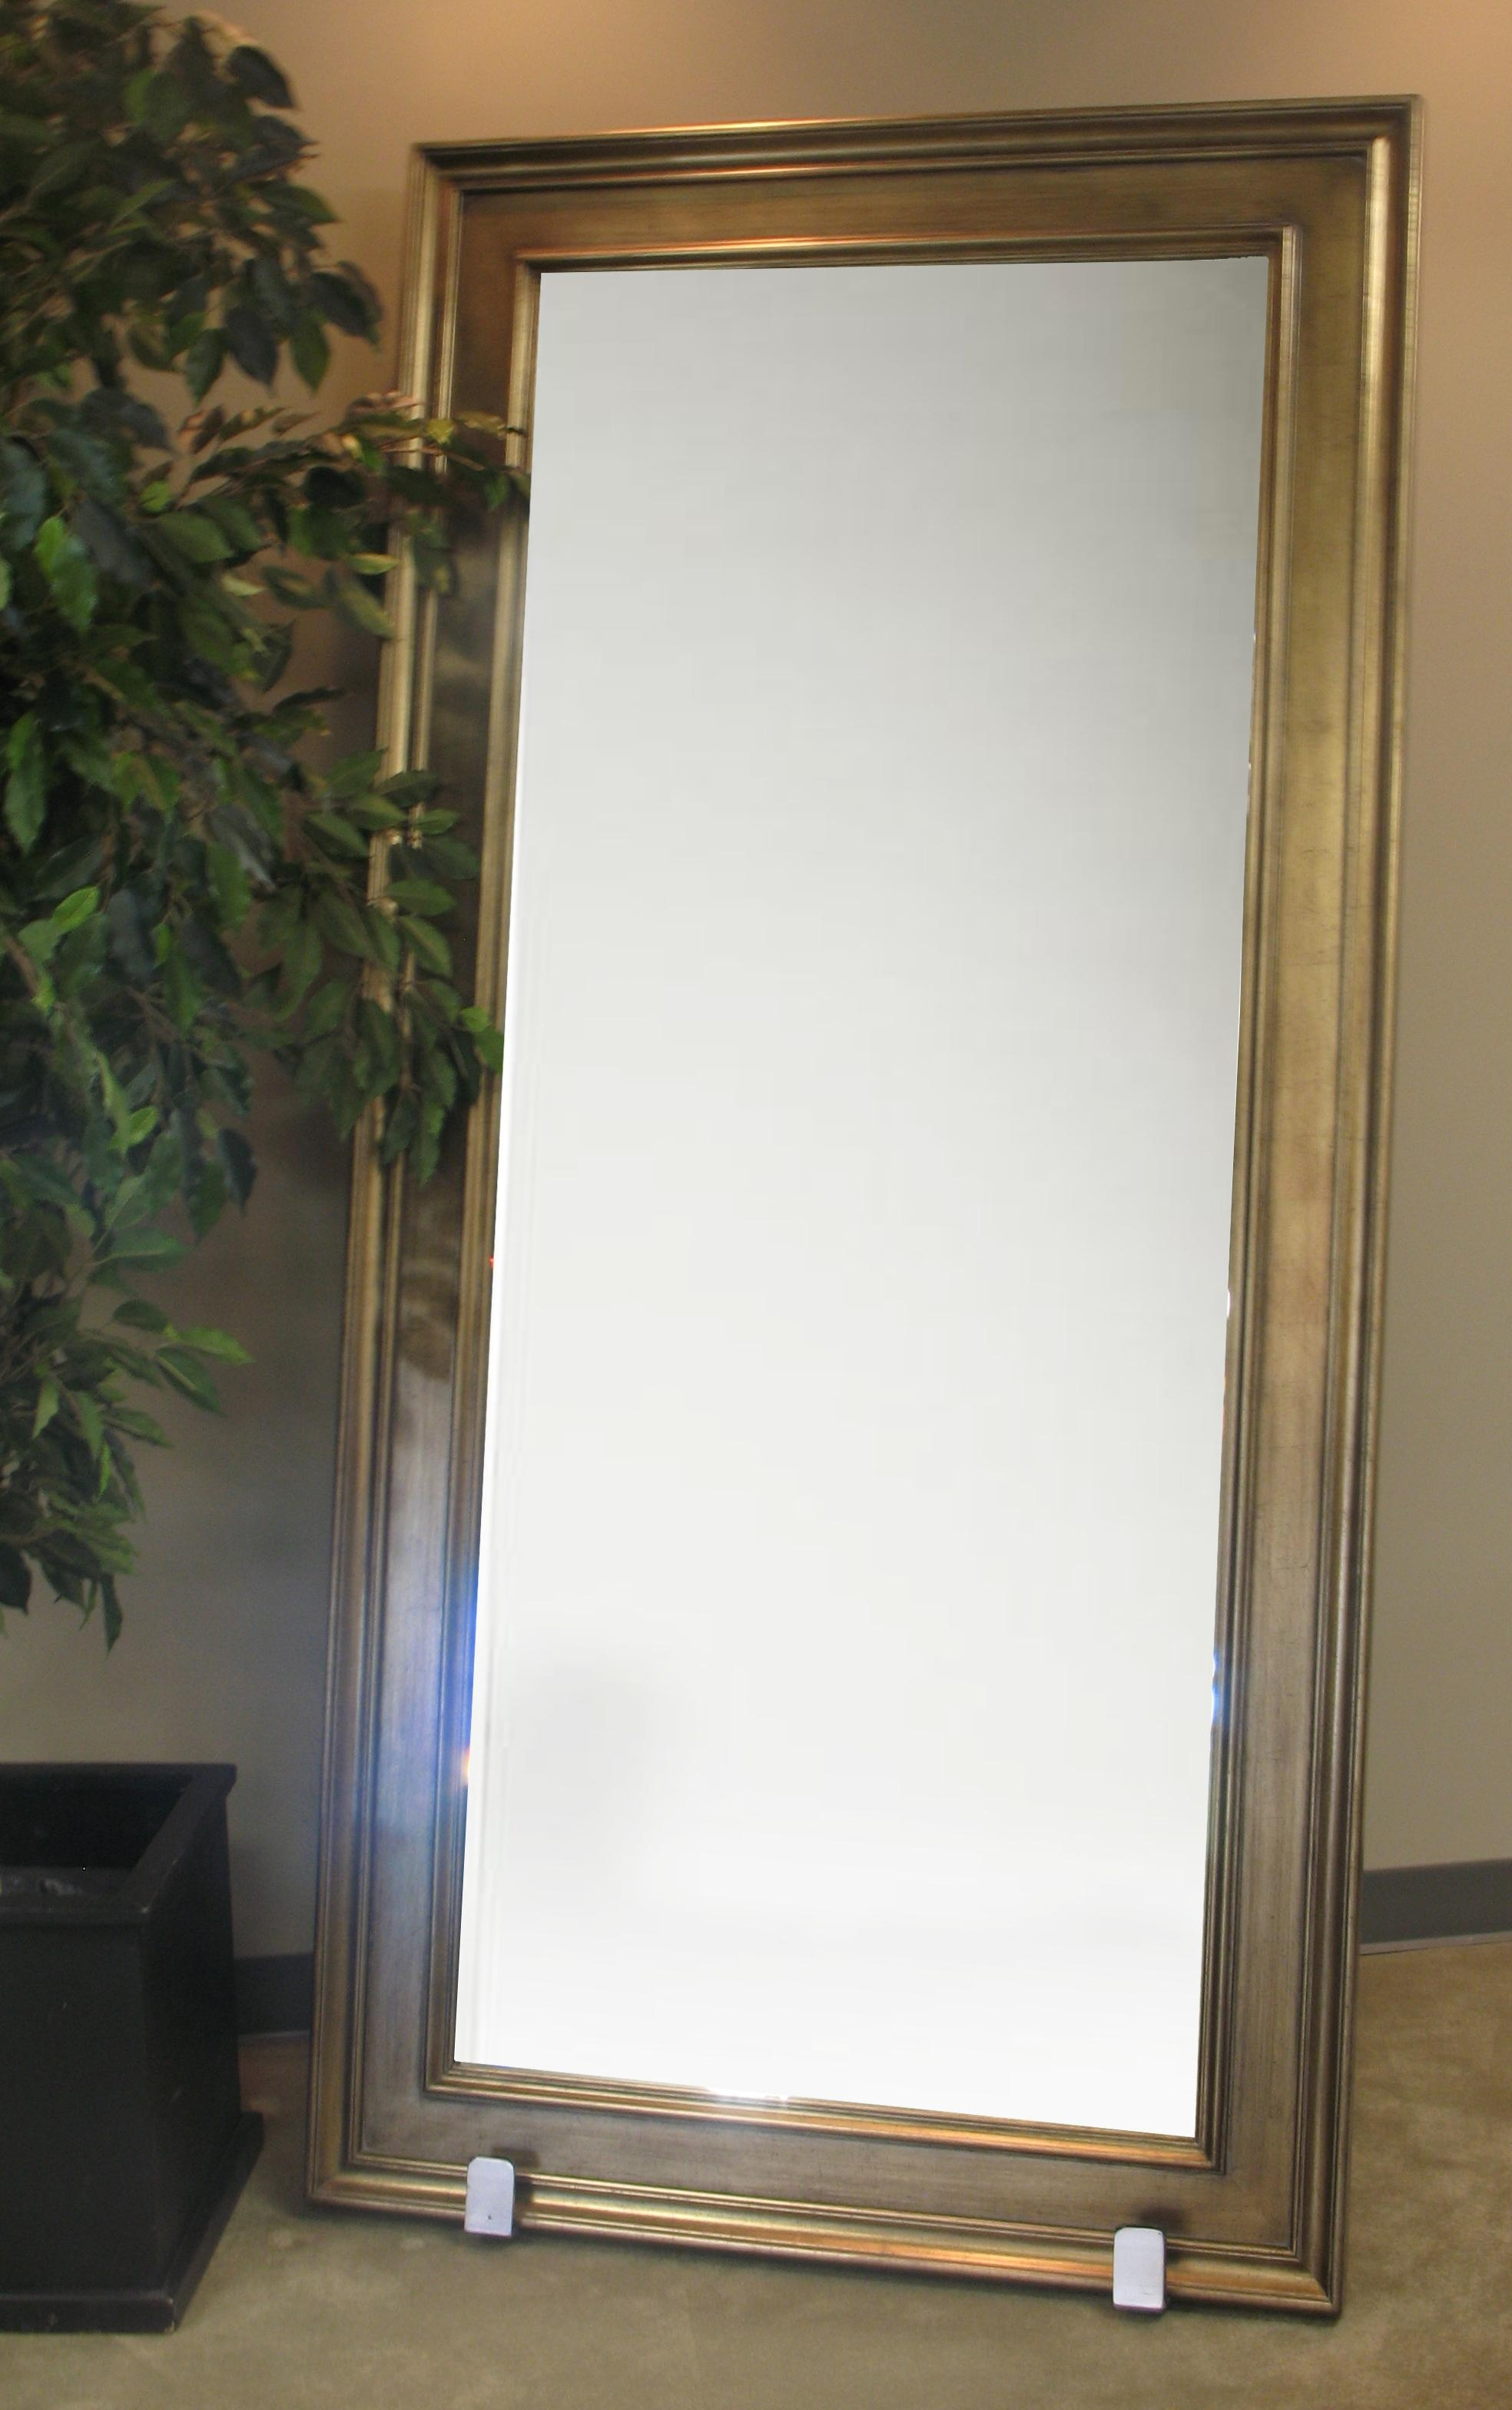 Gold Frame Floor Mirror | Town & Country Event Rentals Throughout Framed Floor Mirrors (Image 13 of 20)